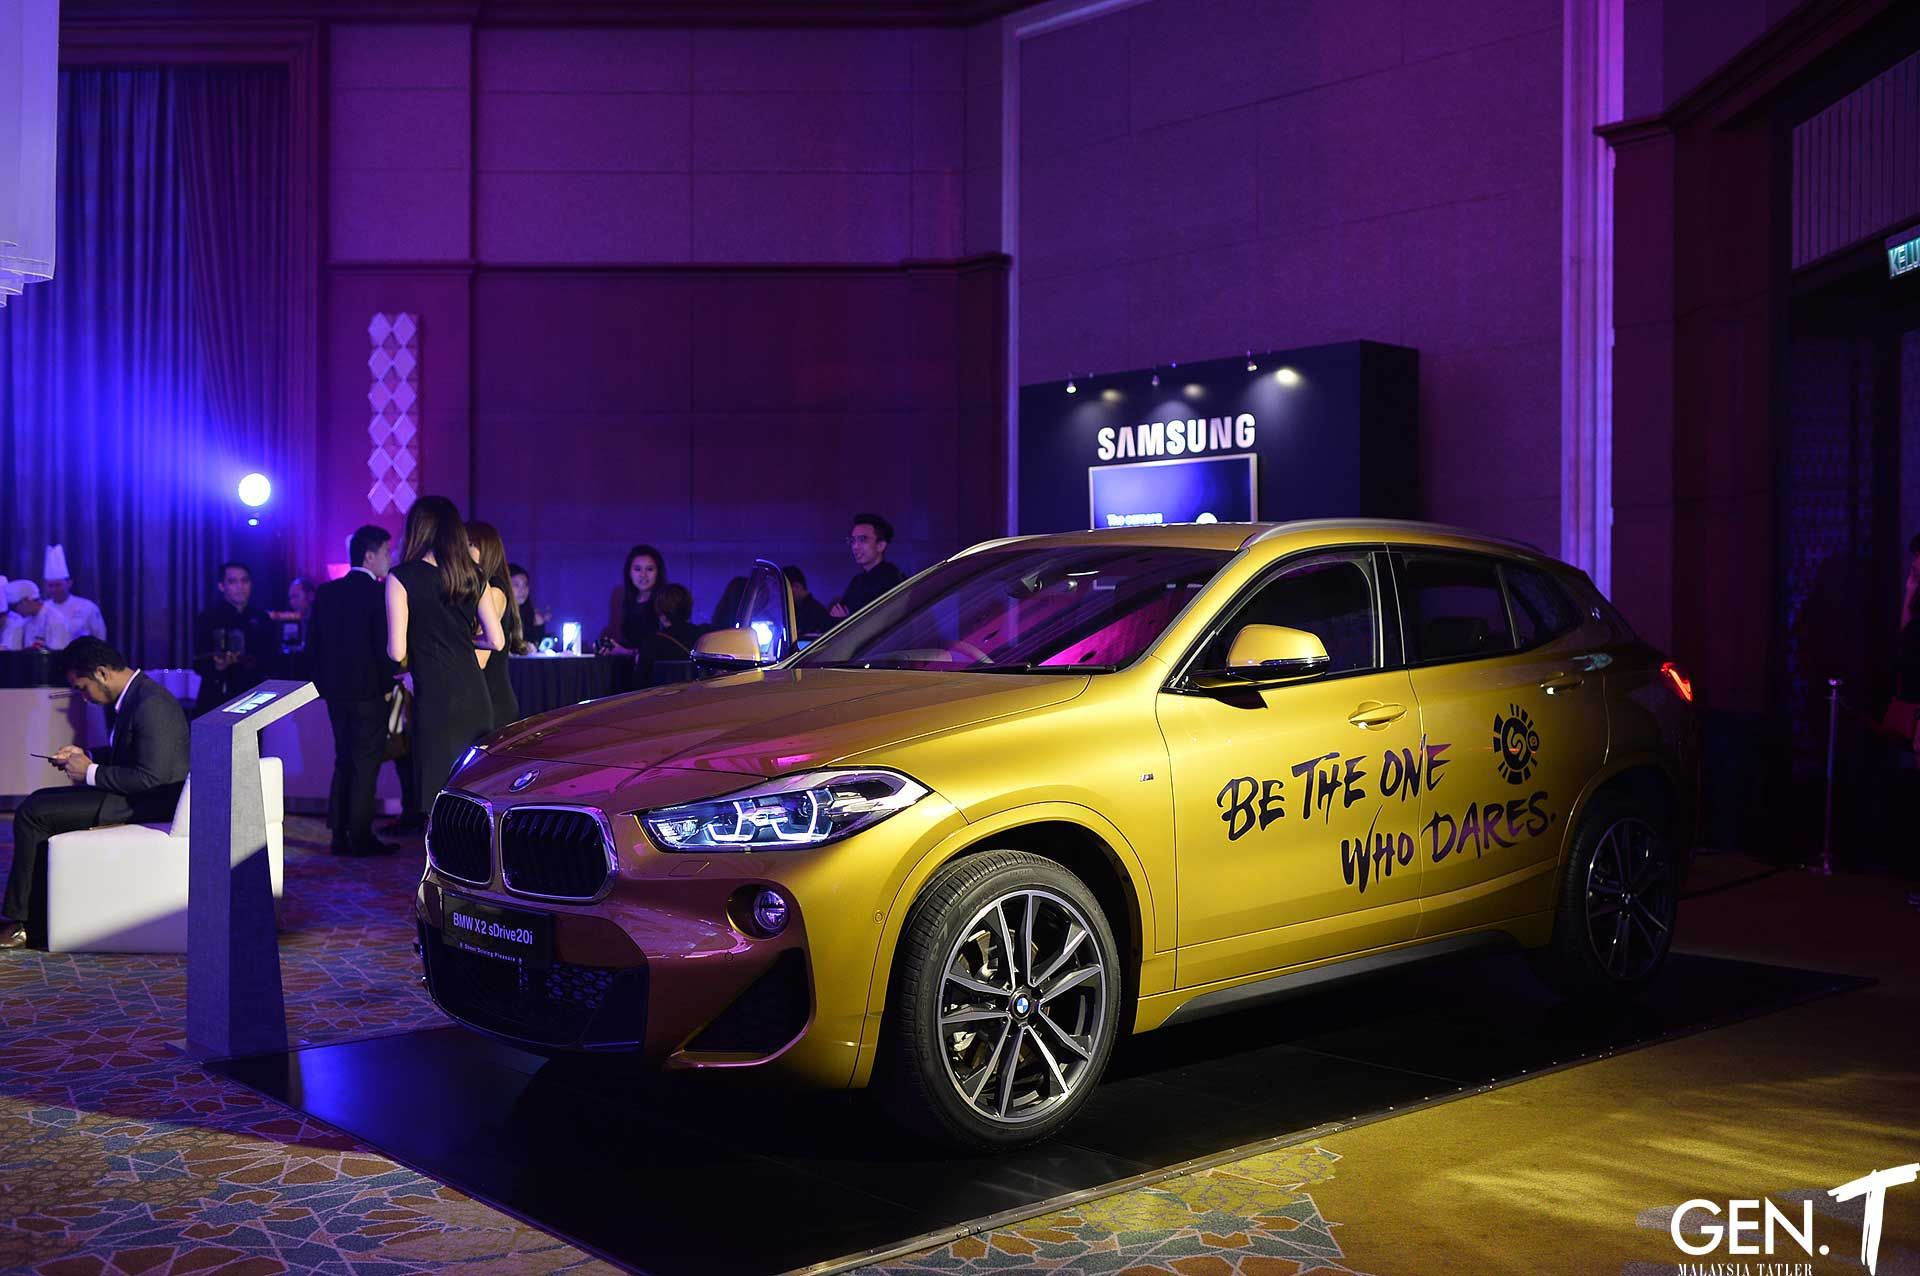 BMW X2 on display